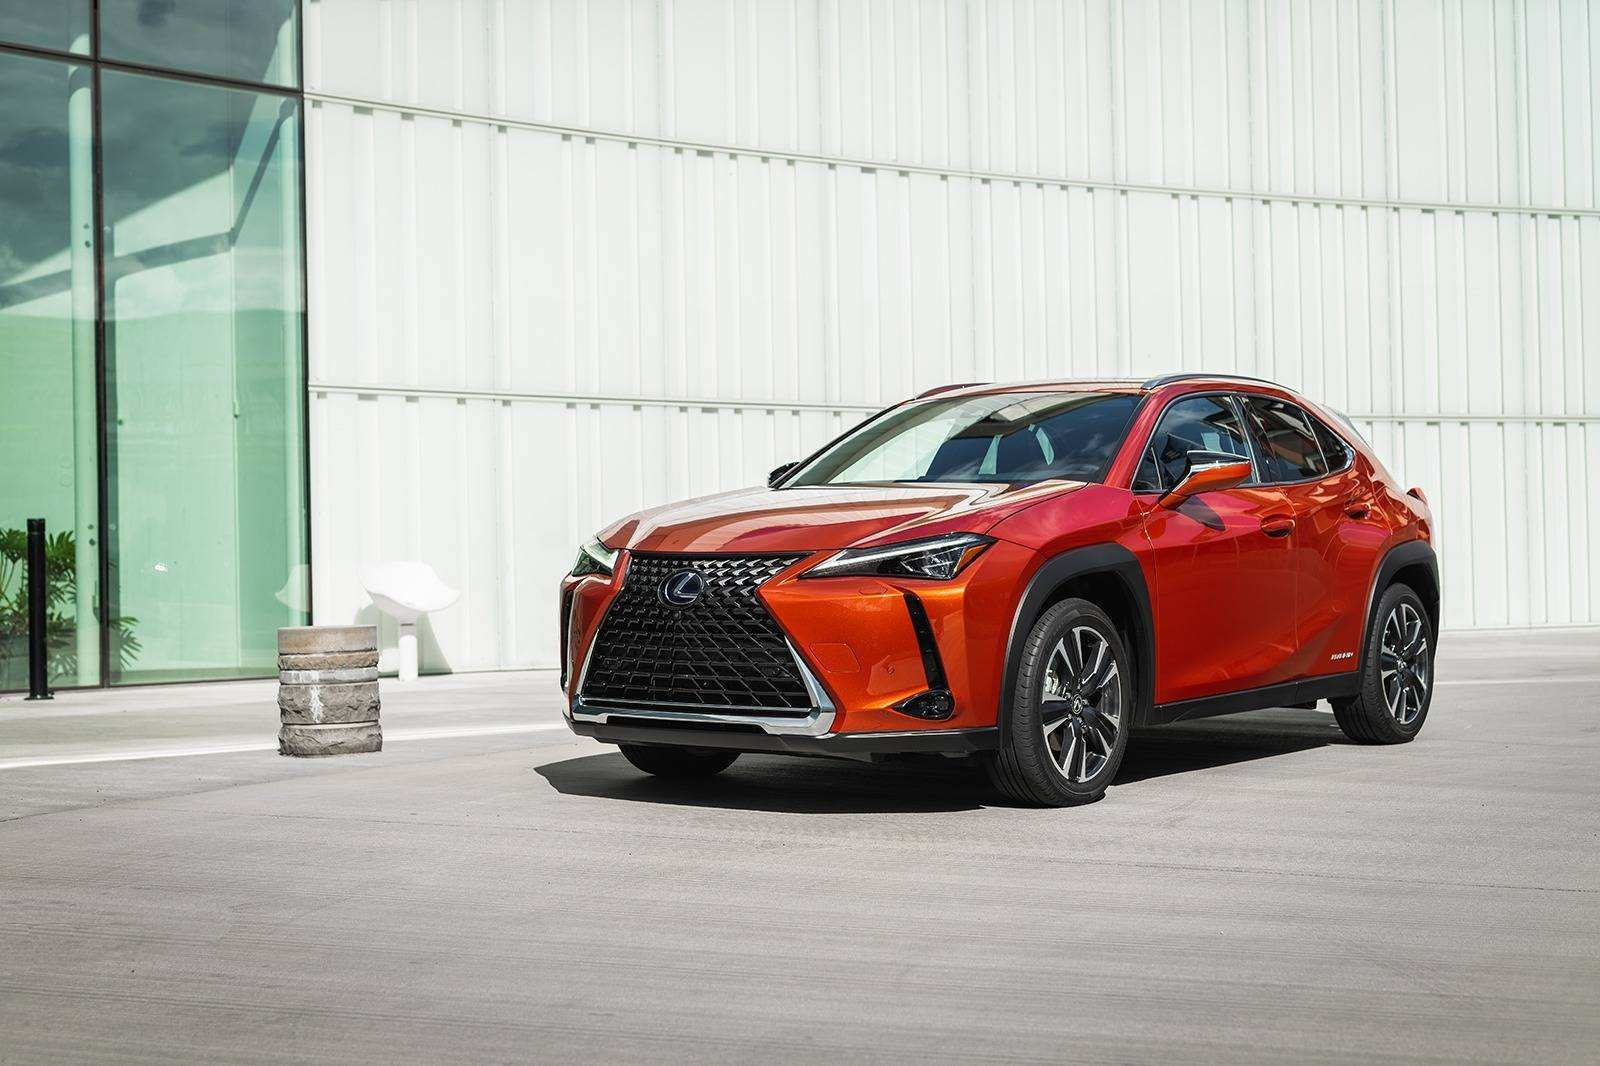 17 All New 2019 Lexus Ux Release Date Spy Shoot for 2019 Lexus Ux Release Date